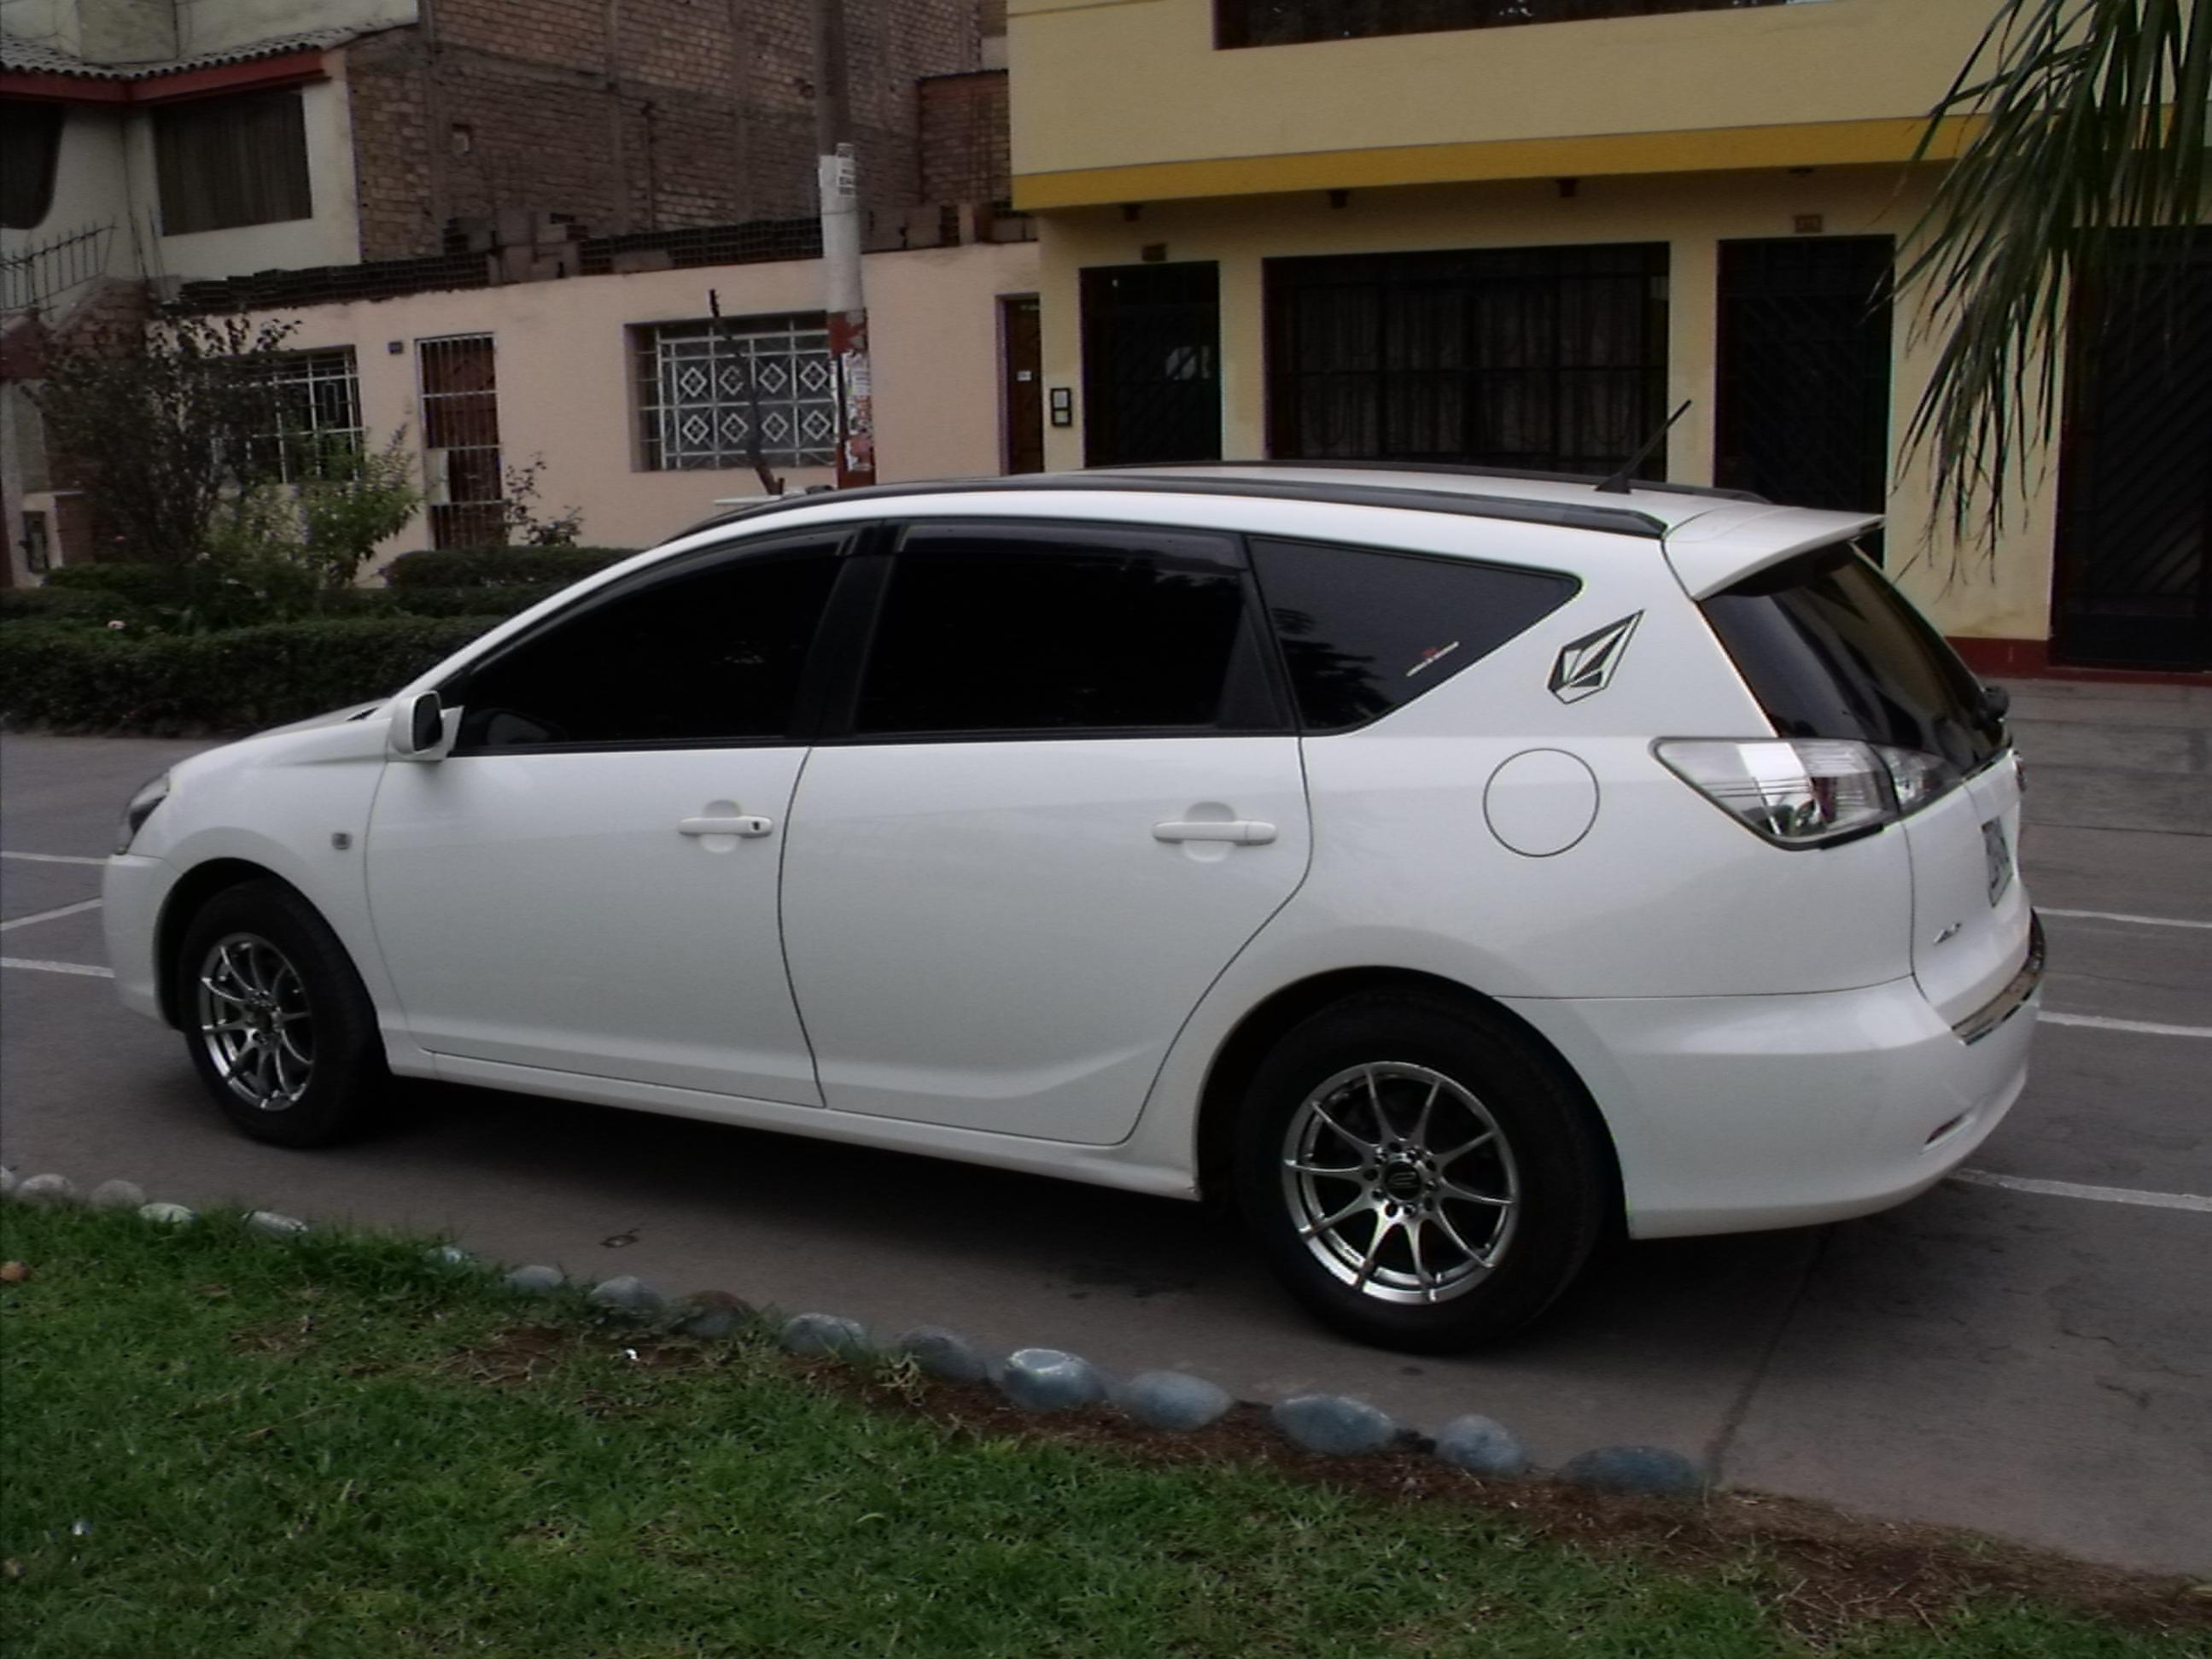 2005 Toyota Caldina Photos Informations Articles I Need A Wiring Diagram For 30